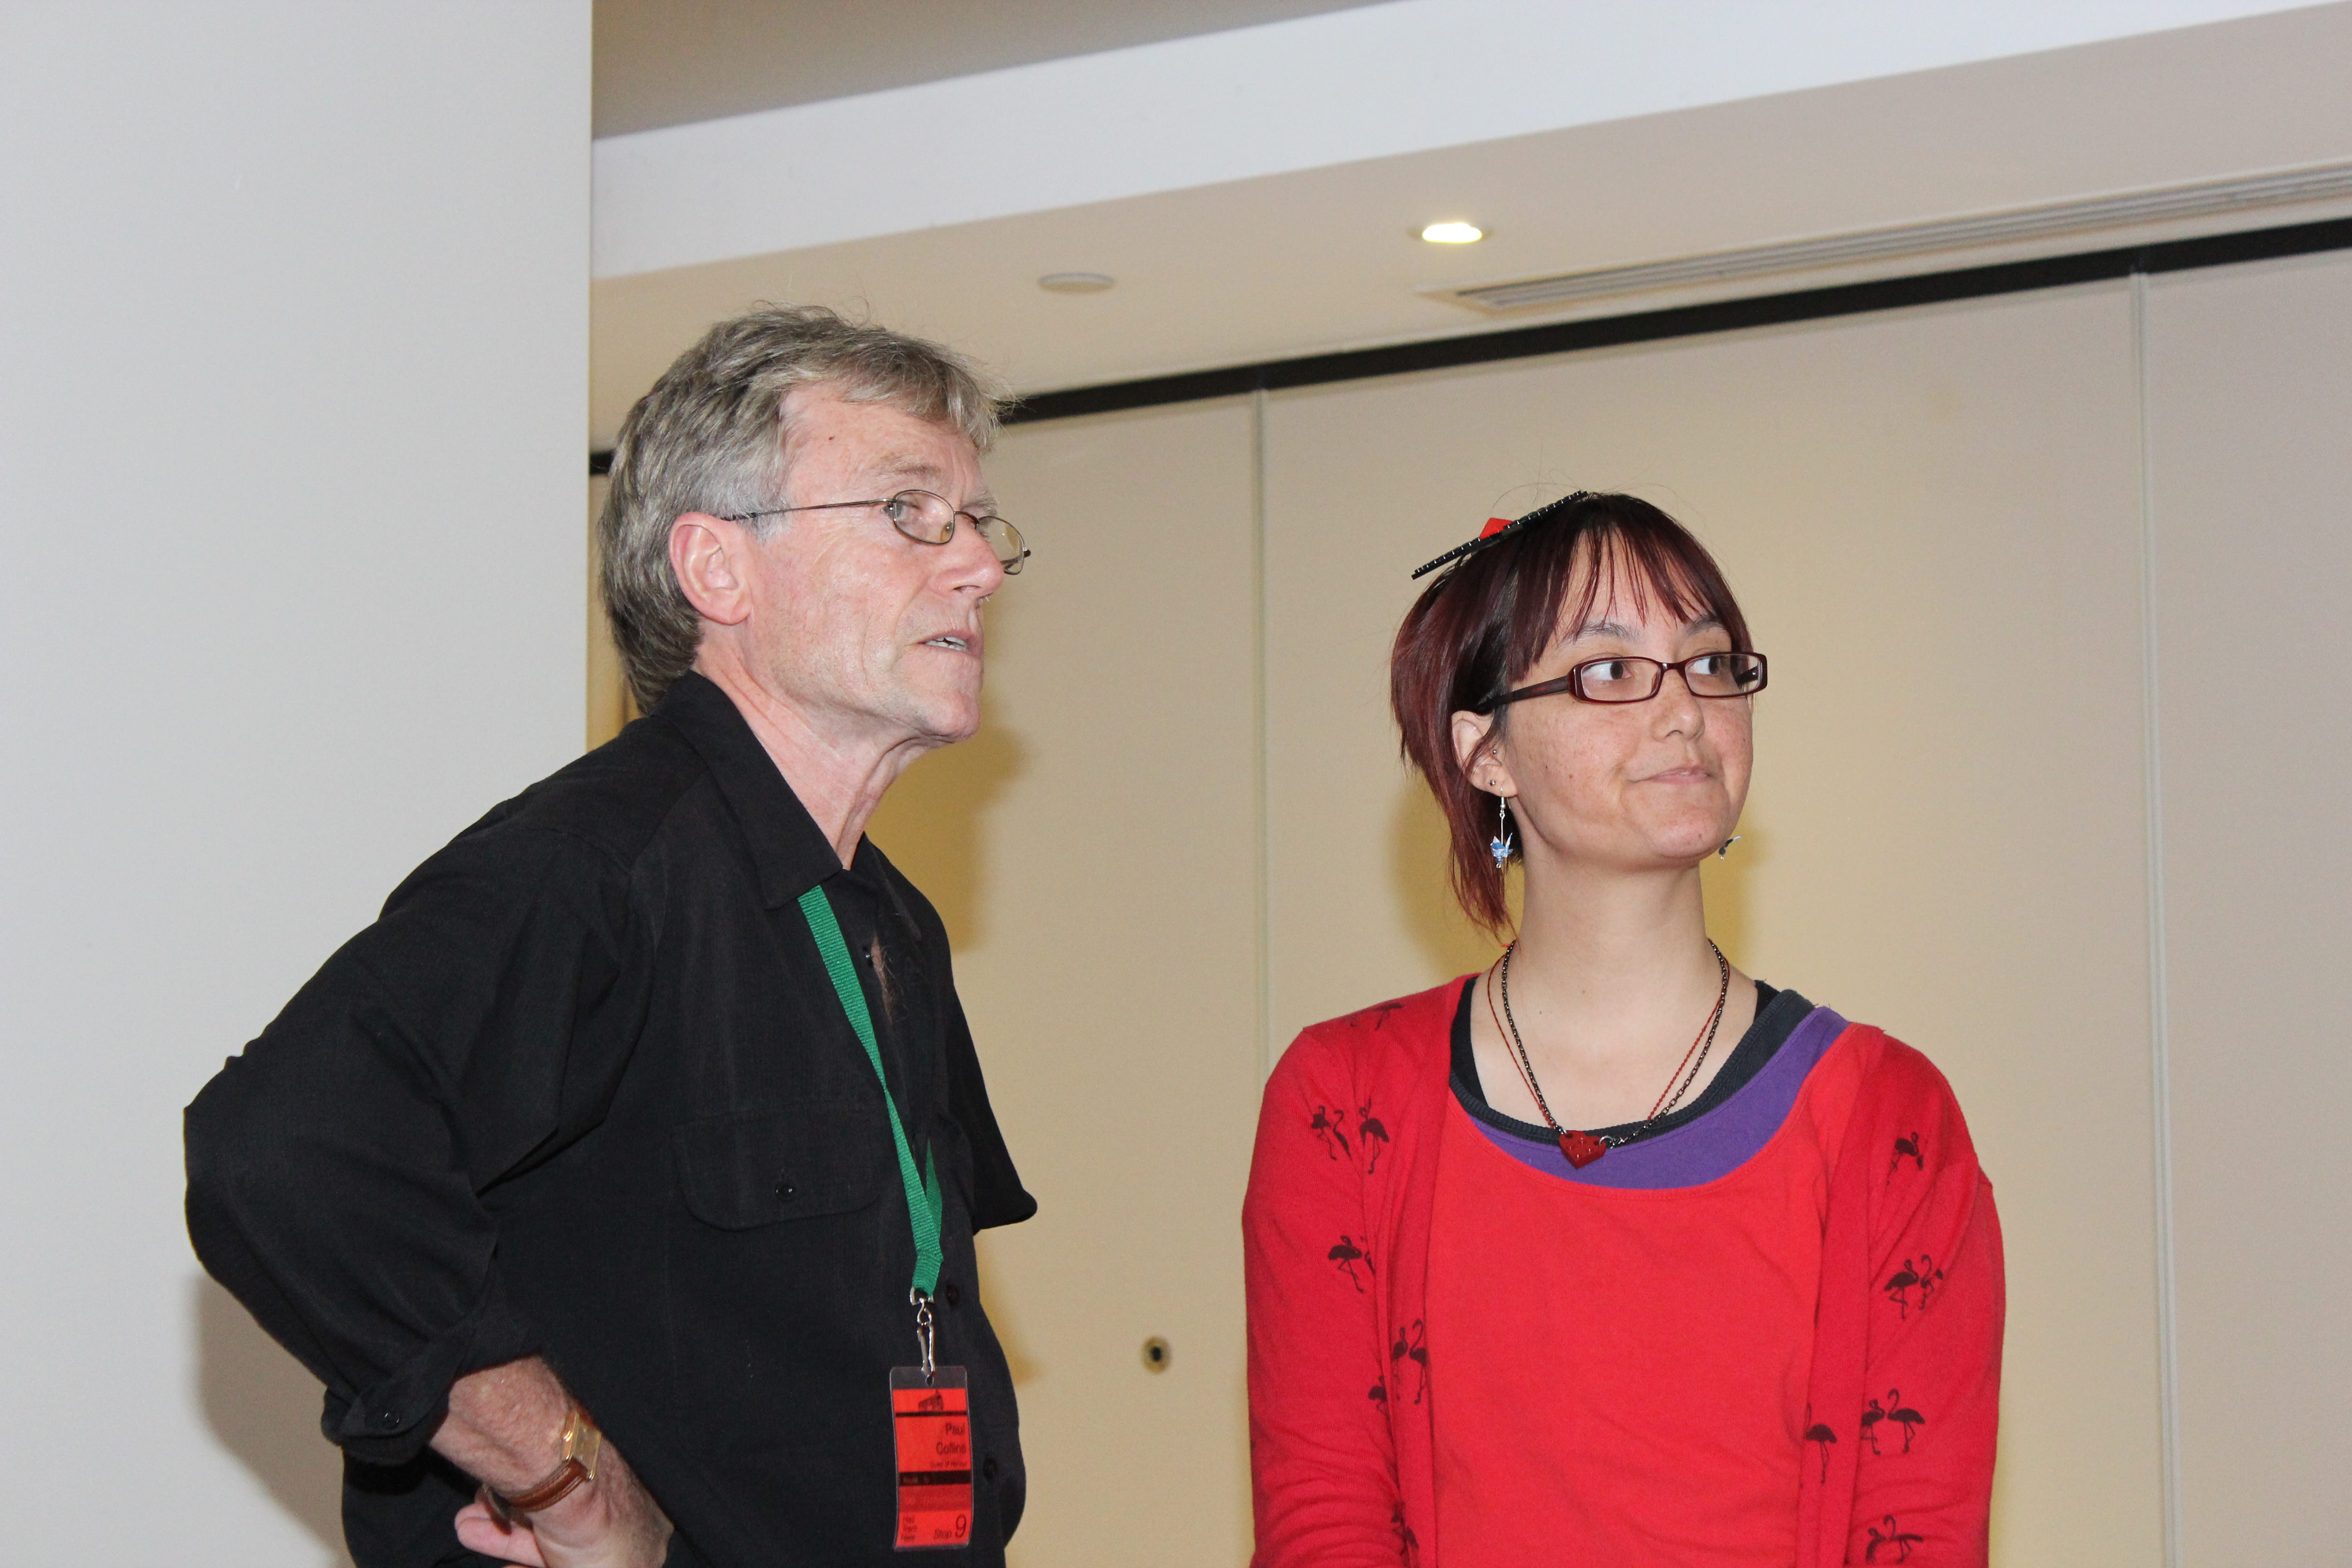 Paul Collins and Stephanie Lai